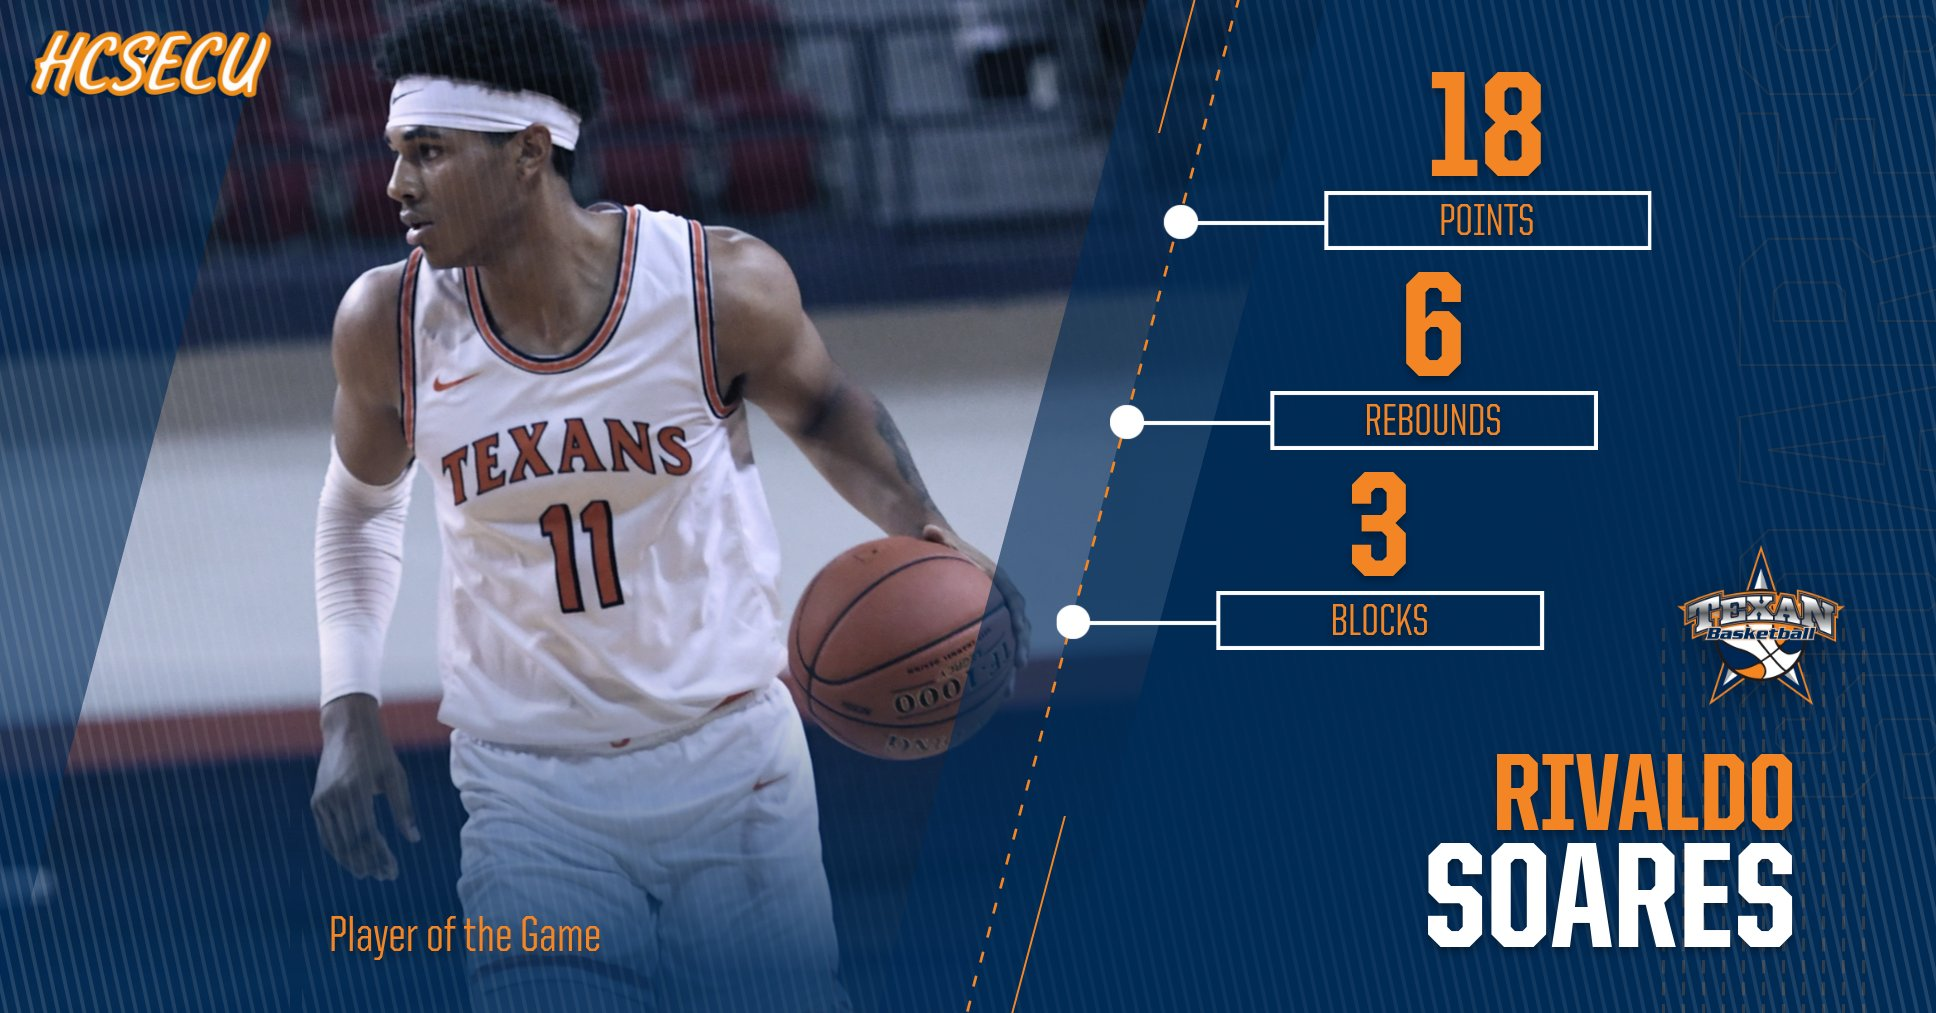 Soares drops 18 as Texans outlast #11 Western Texas 62-61 Saturday